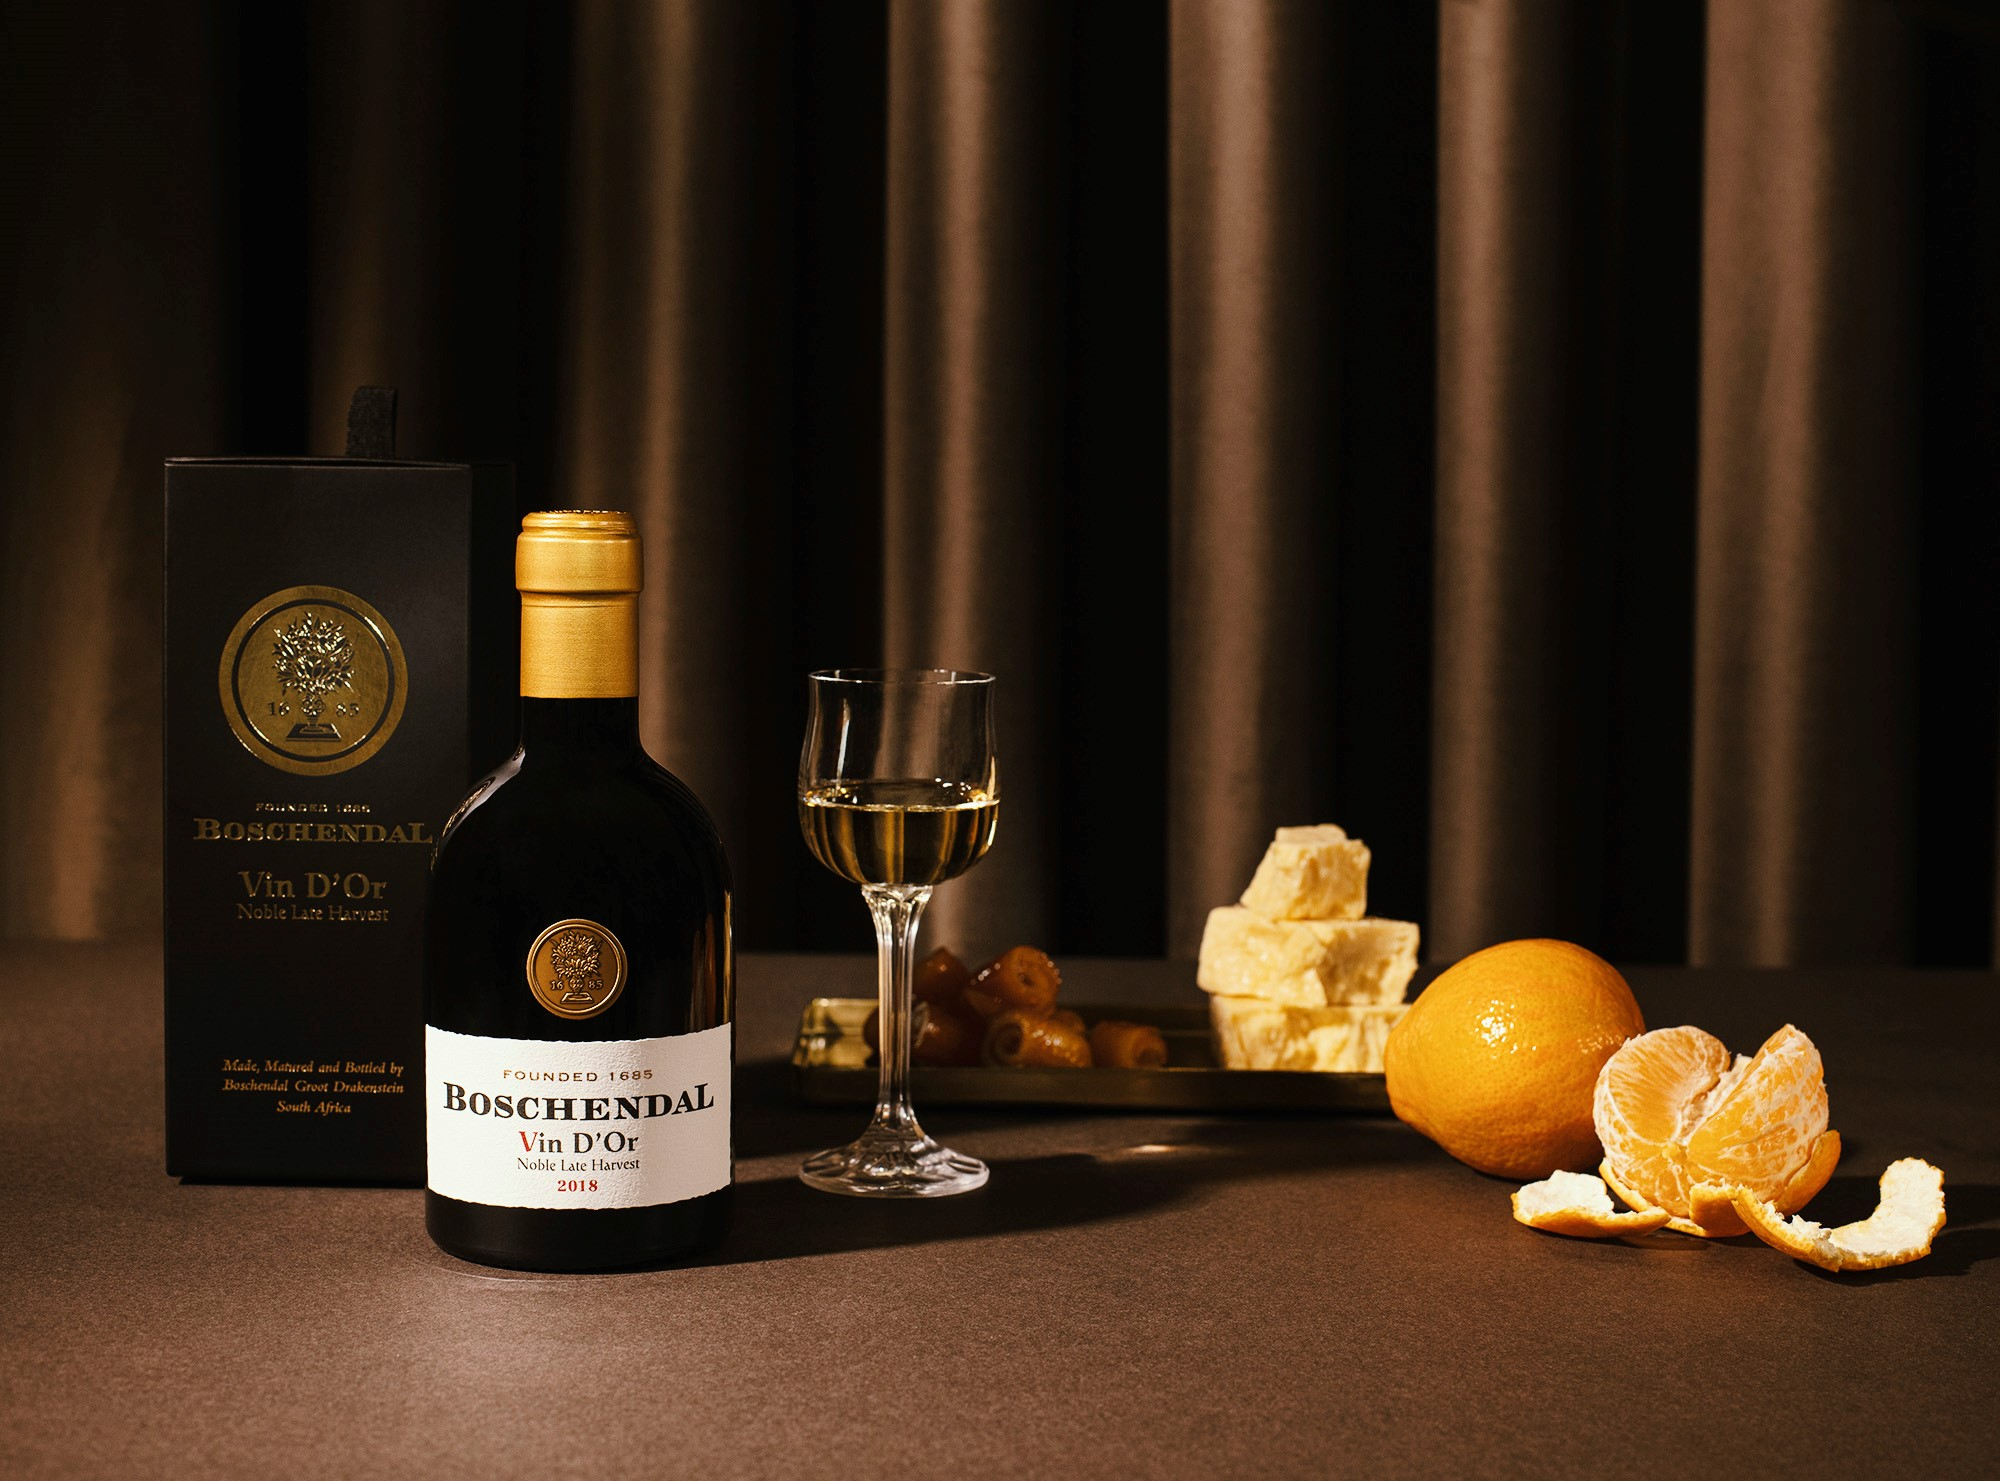 A Golden Moment: The Boschendal Vin D'Or Joins The World-class Heritage Collection photo